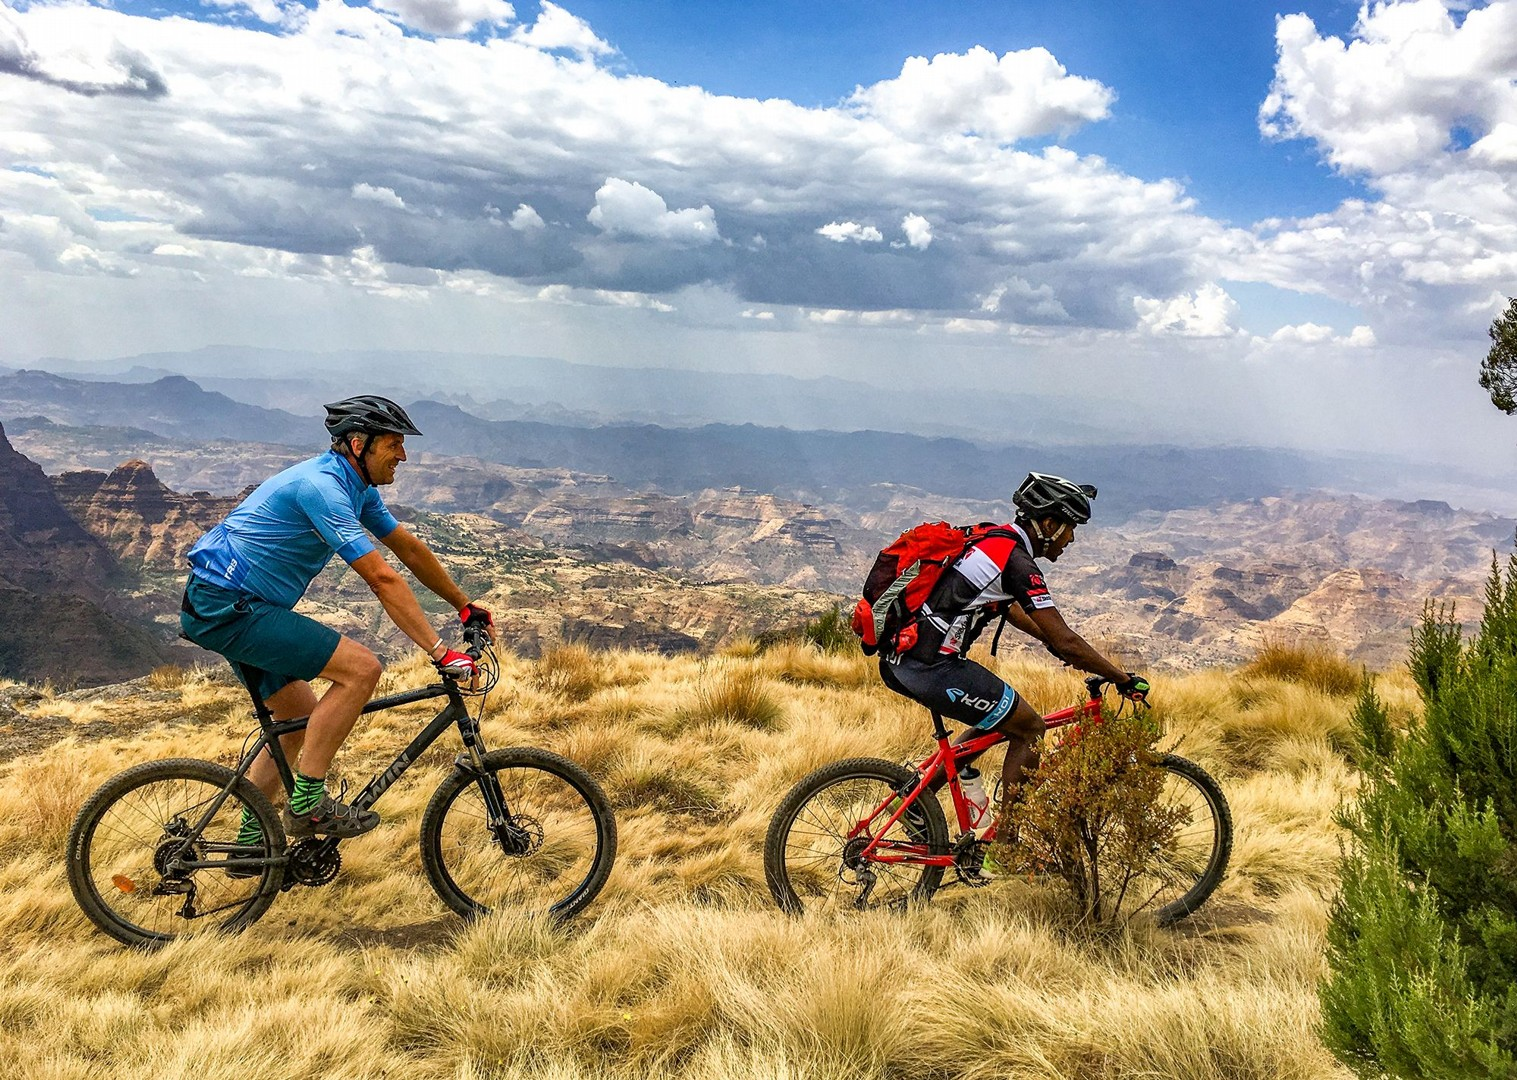 adventure-cycling-journey-in-ethiopia-saddle-skedaddle.jpg - NEW! Ethiopia - Enchanting Ethiopia - Cycling Adventures